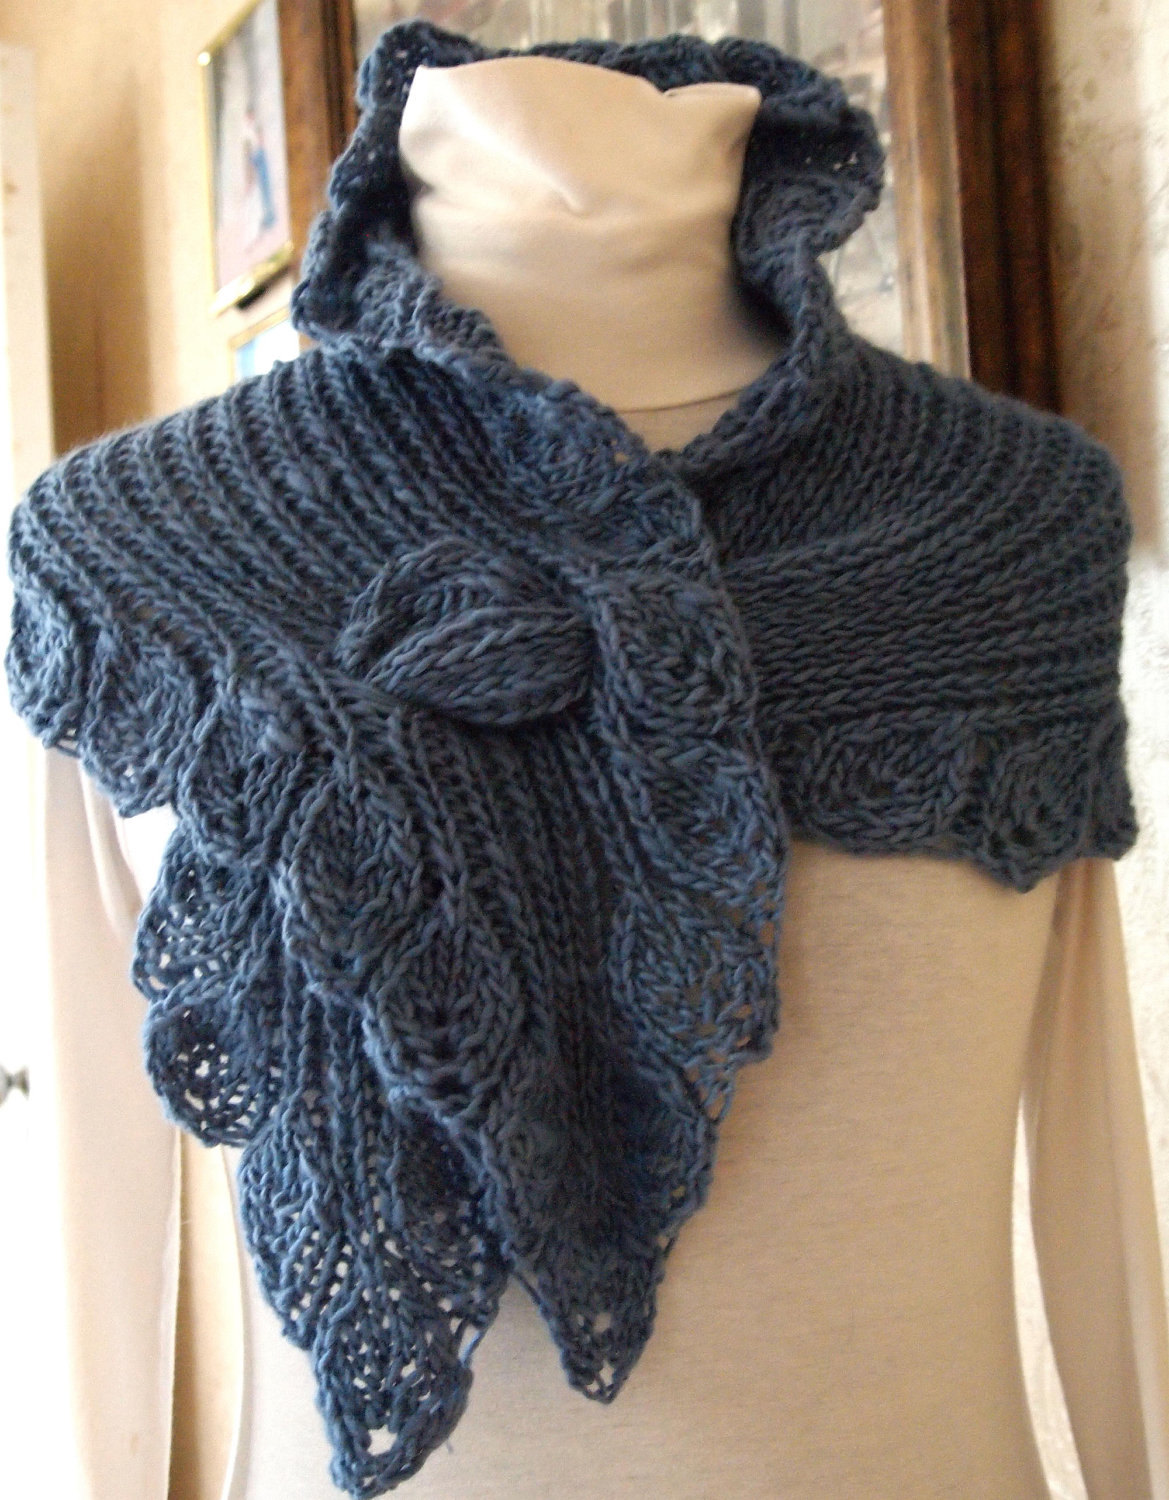 Knitting Pattern for Self-Fastening Leaf Lace Wrap